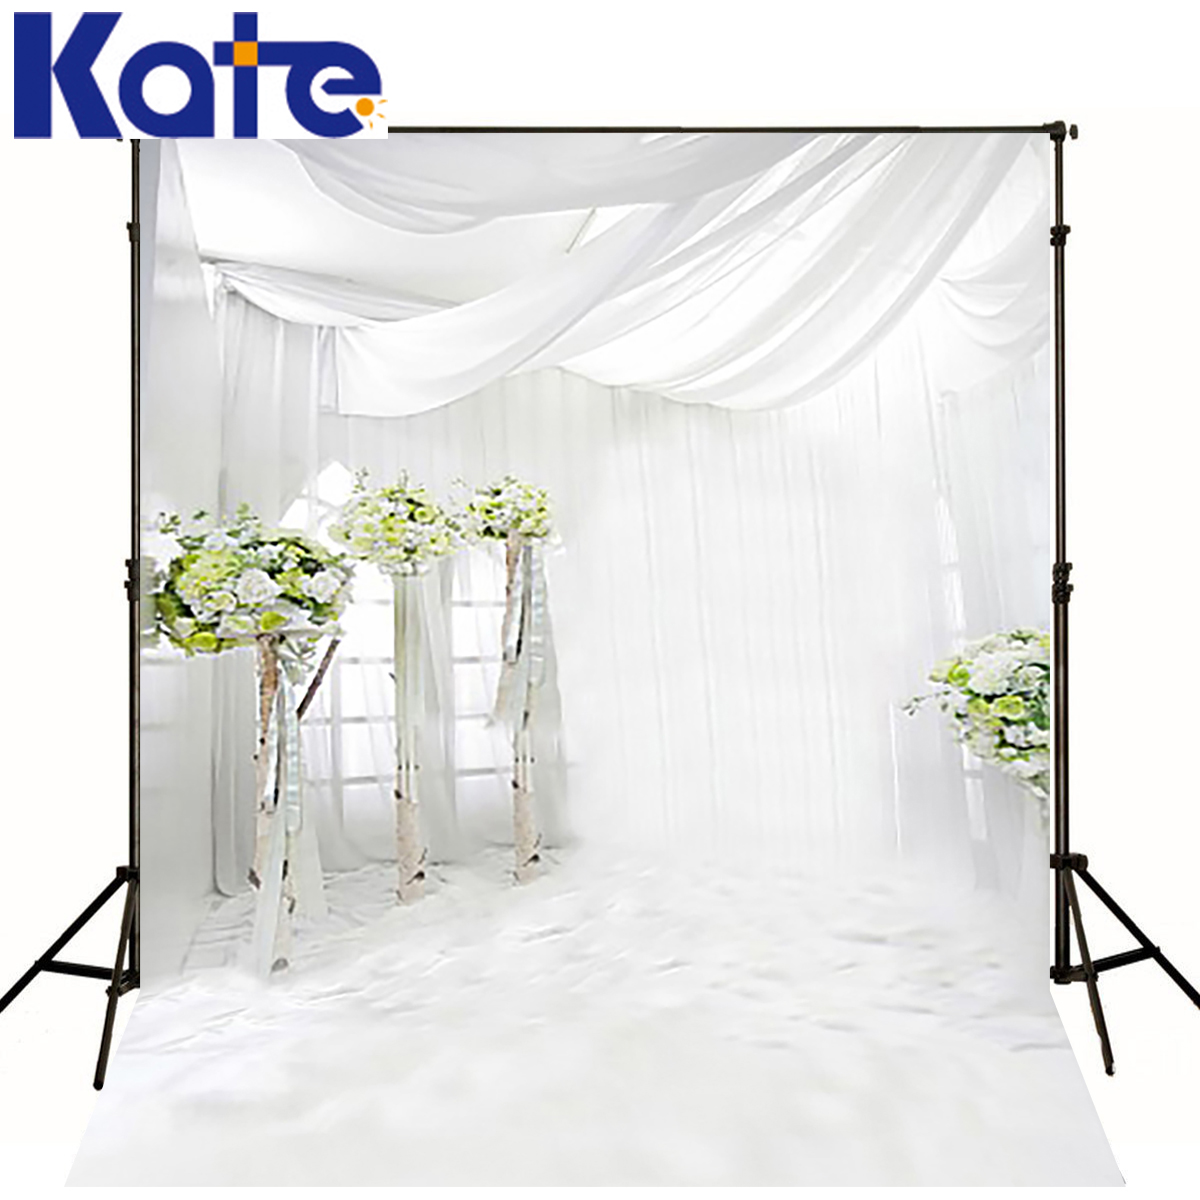 wedding backdrops green flowers photo shoot white wall photography floor backgrounds for party studio sky background picture 200 300cm backgrounds for photo studio photography backdrops white green the open air terrace flowers tree for wedding